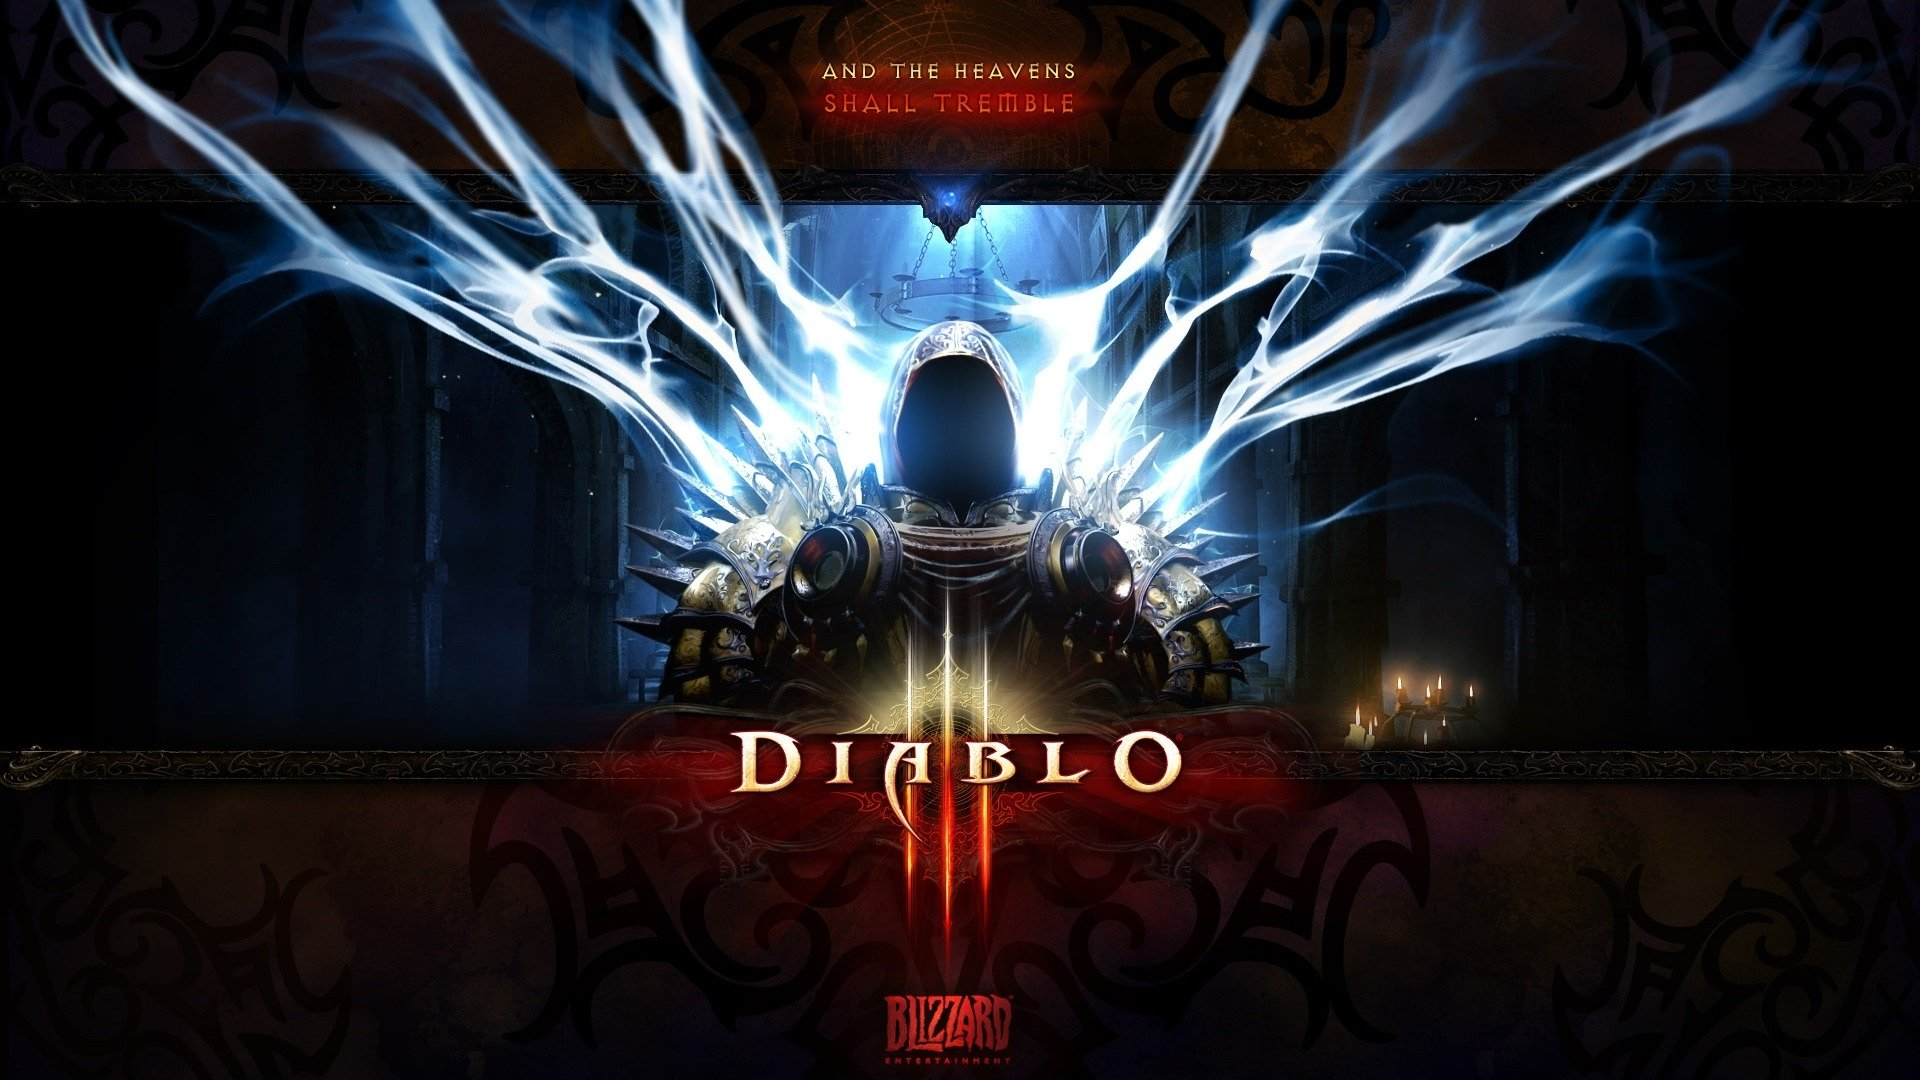 Video Game - Diablo III  Video Game Tyrael (Diablo III) Wallpaper